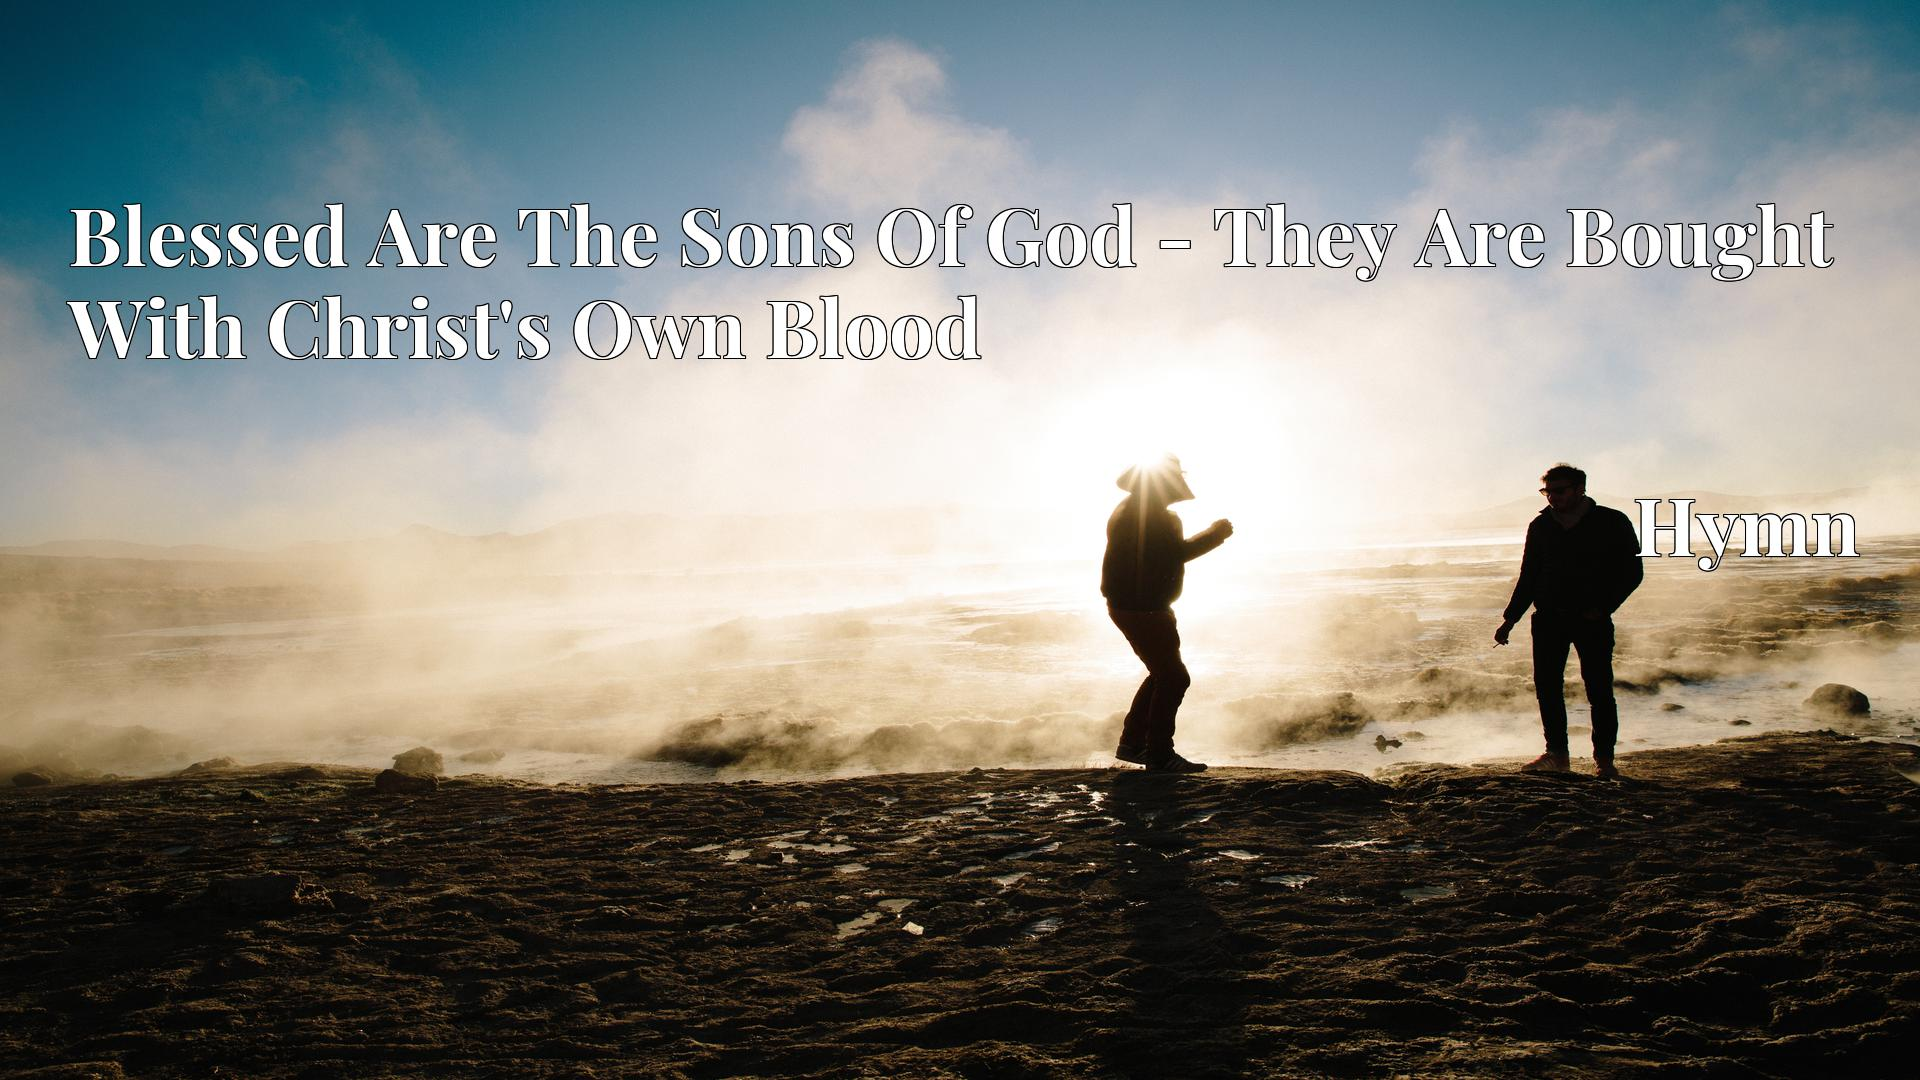 Blessed Are The Sons Of God - They Are Bought With Christ's Own Blood Hymn